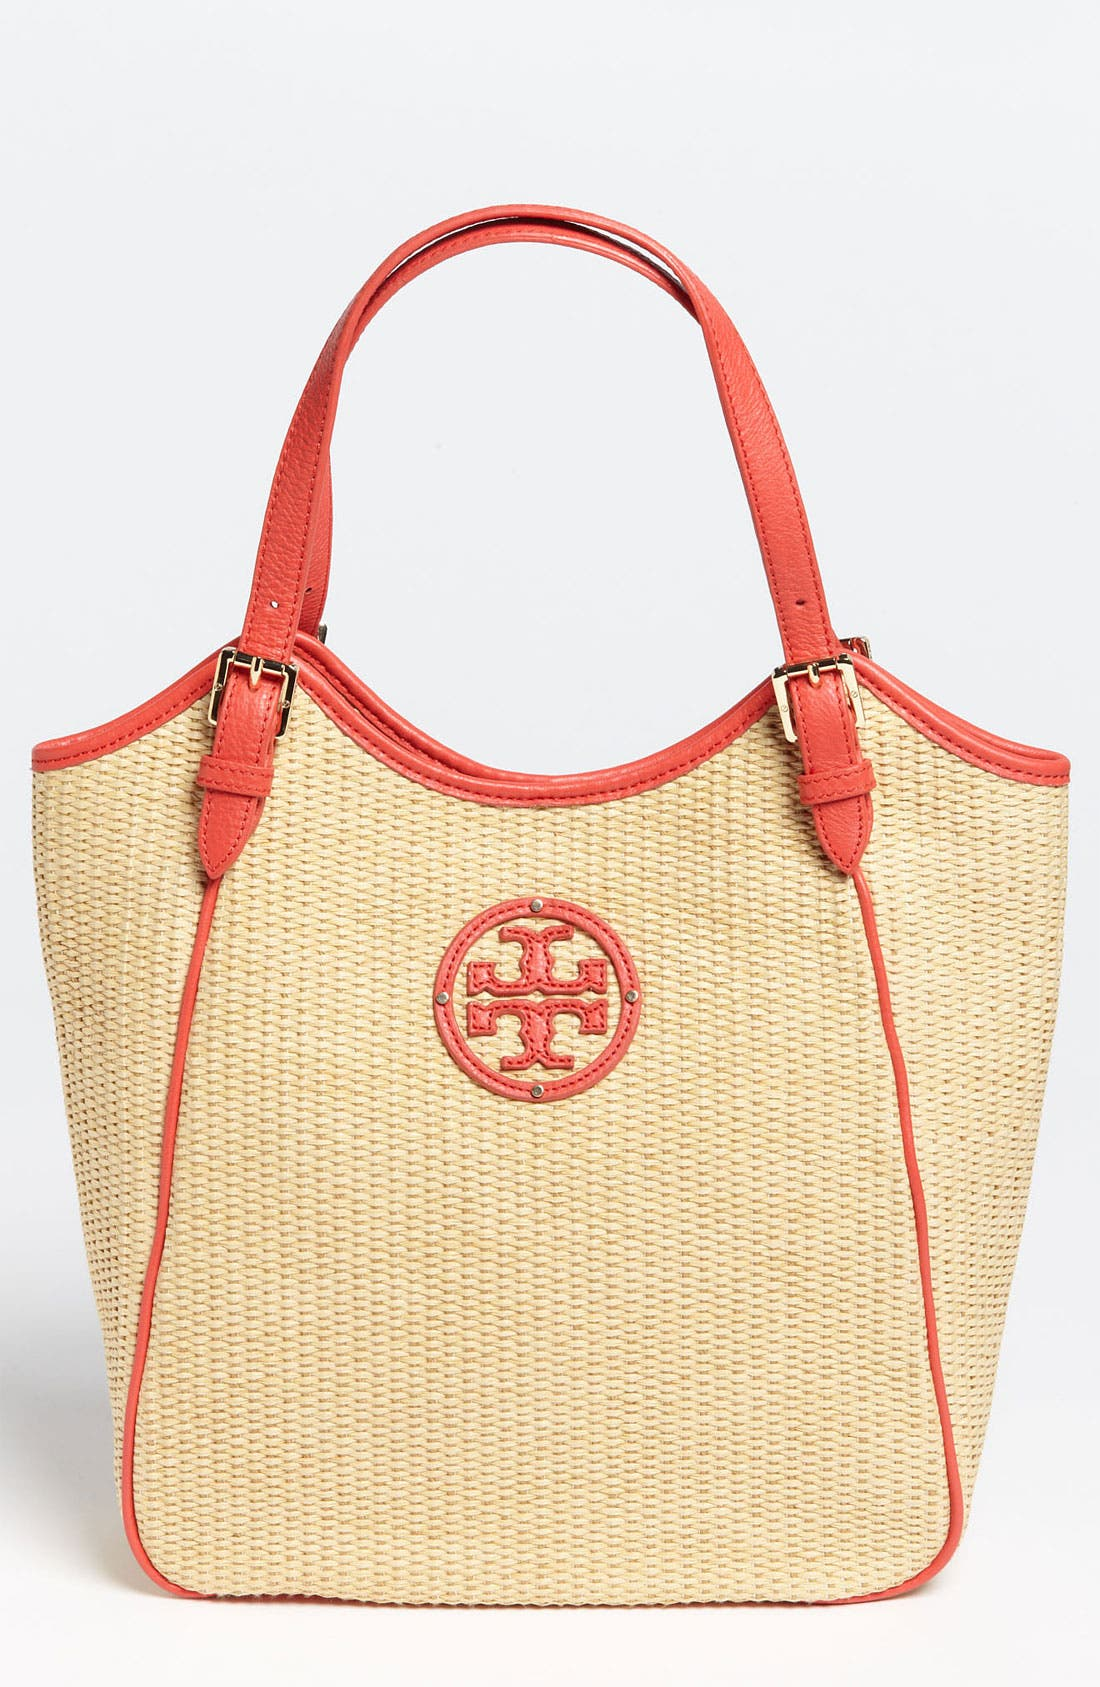 Main Image - Tory Burch 'Small' Slouchy Woven Tote